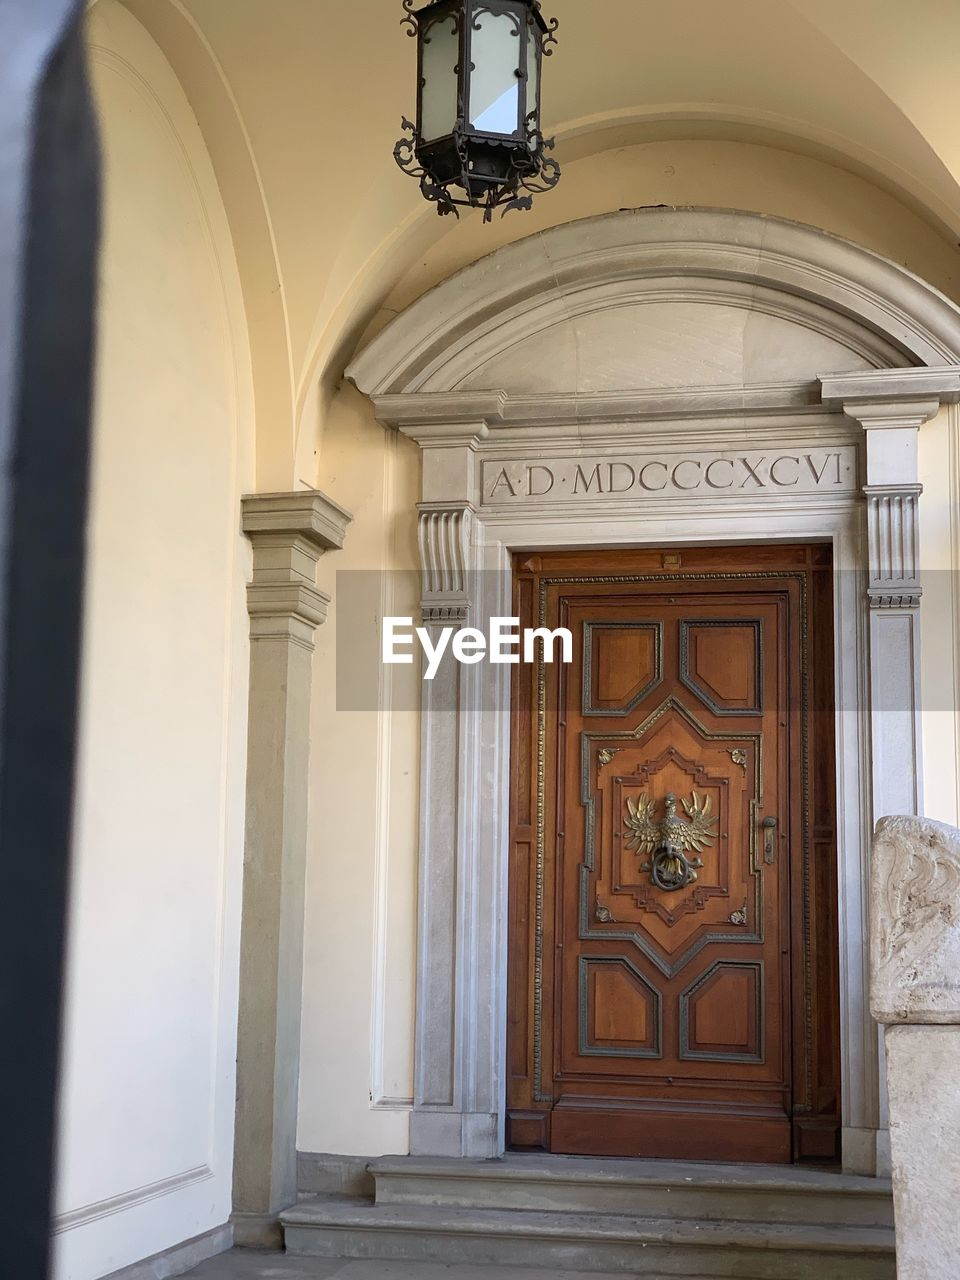 architecture, door, entrance, built structure, building, building exterior, no people, arch, day, architectural column, closed, house, the past, wall - building feature, lighting equipment, history, arcade, security, outdoors, ceiling, ornate